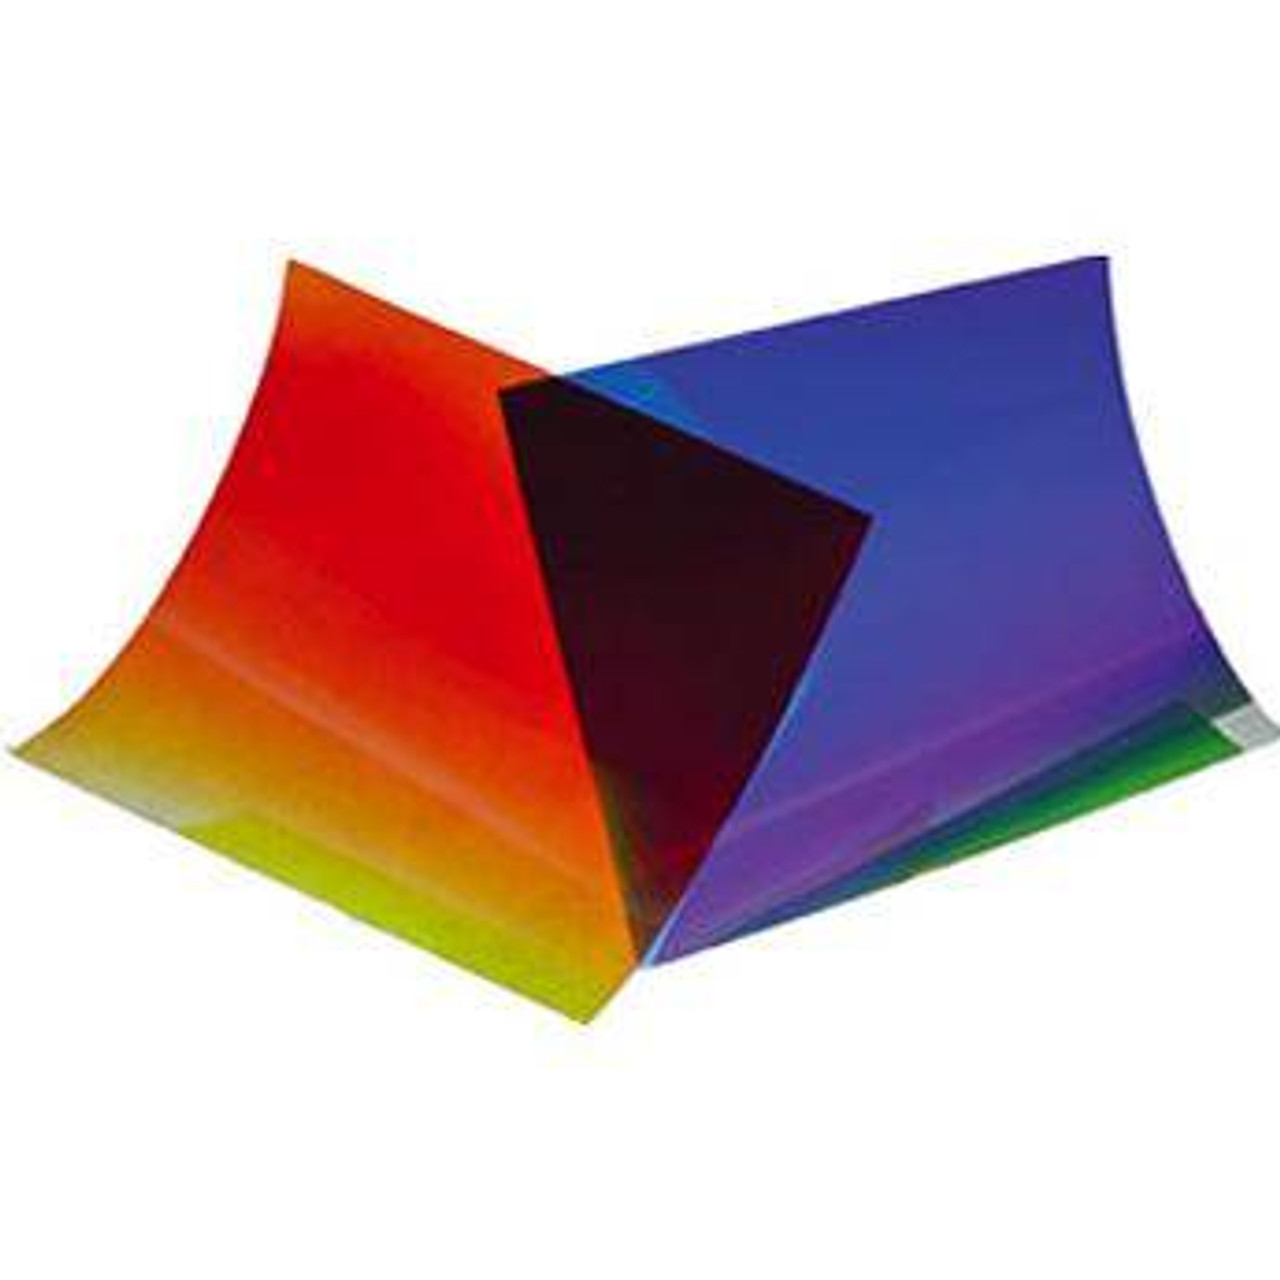 Rosco Dichro Film Colored Plastic Sheet